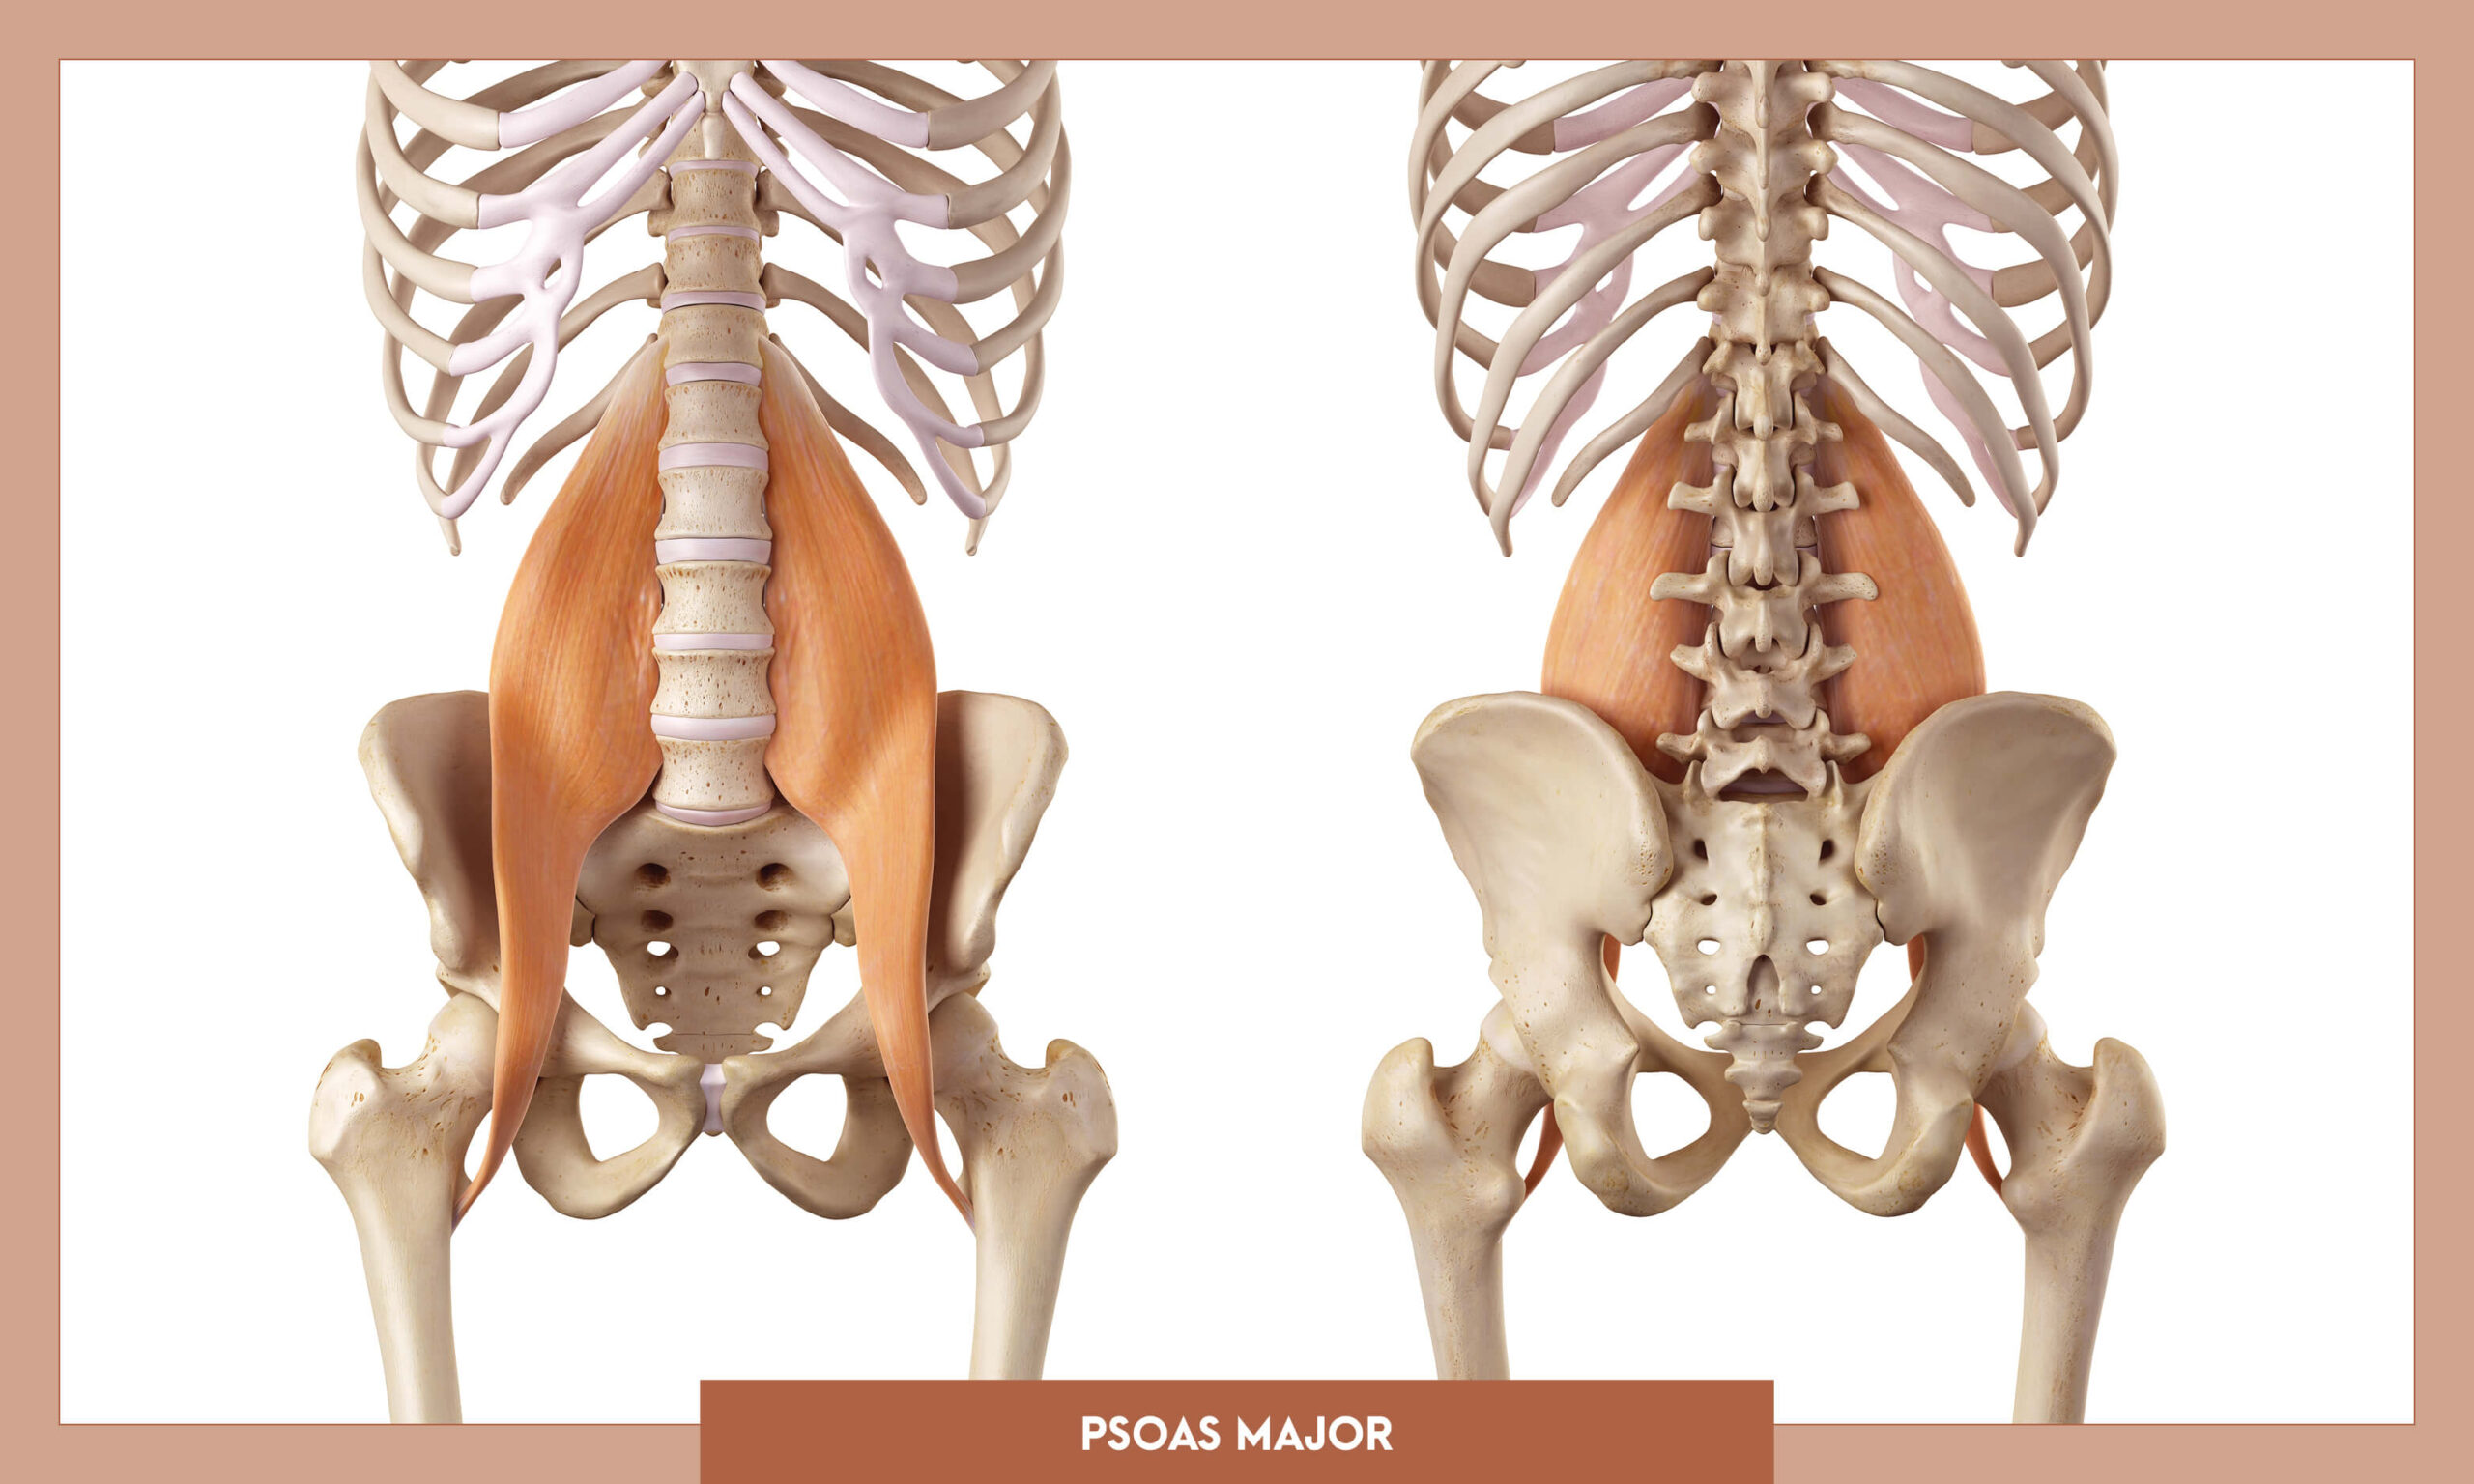 Muscles of the Lower Limb - Psoas major